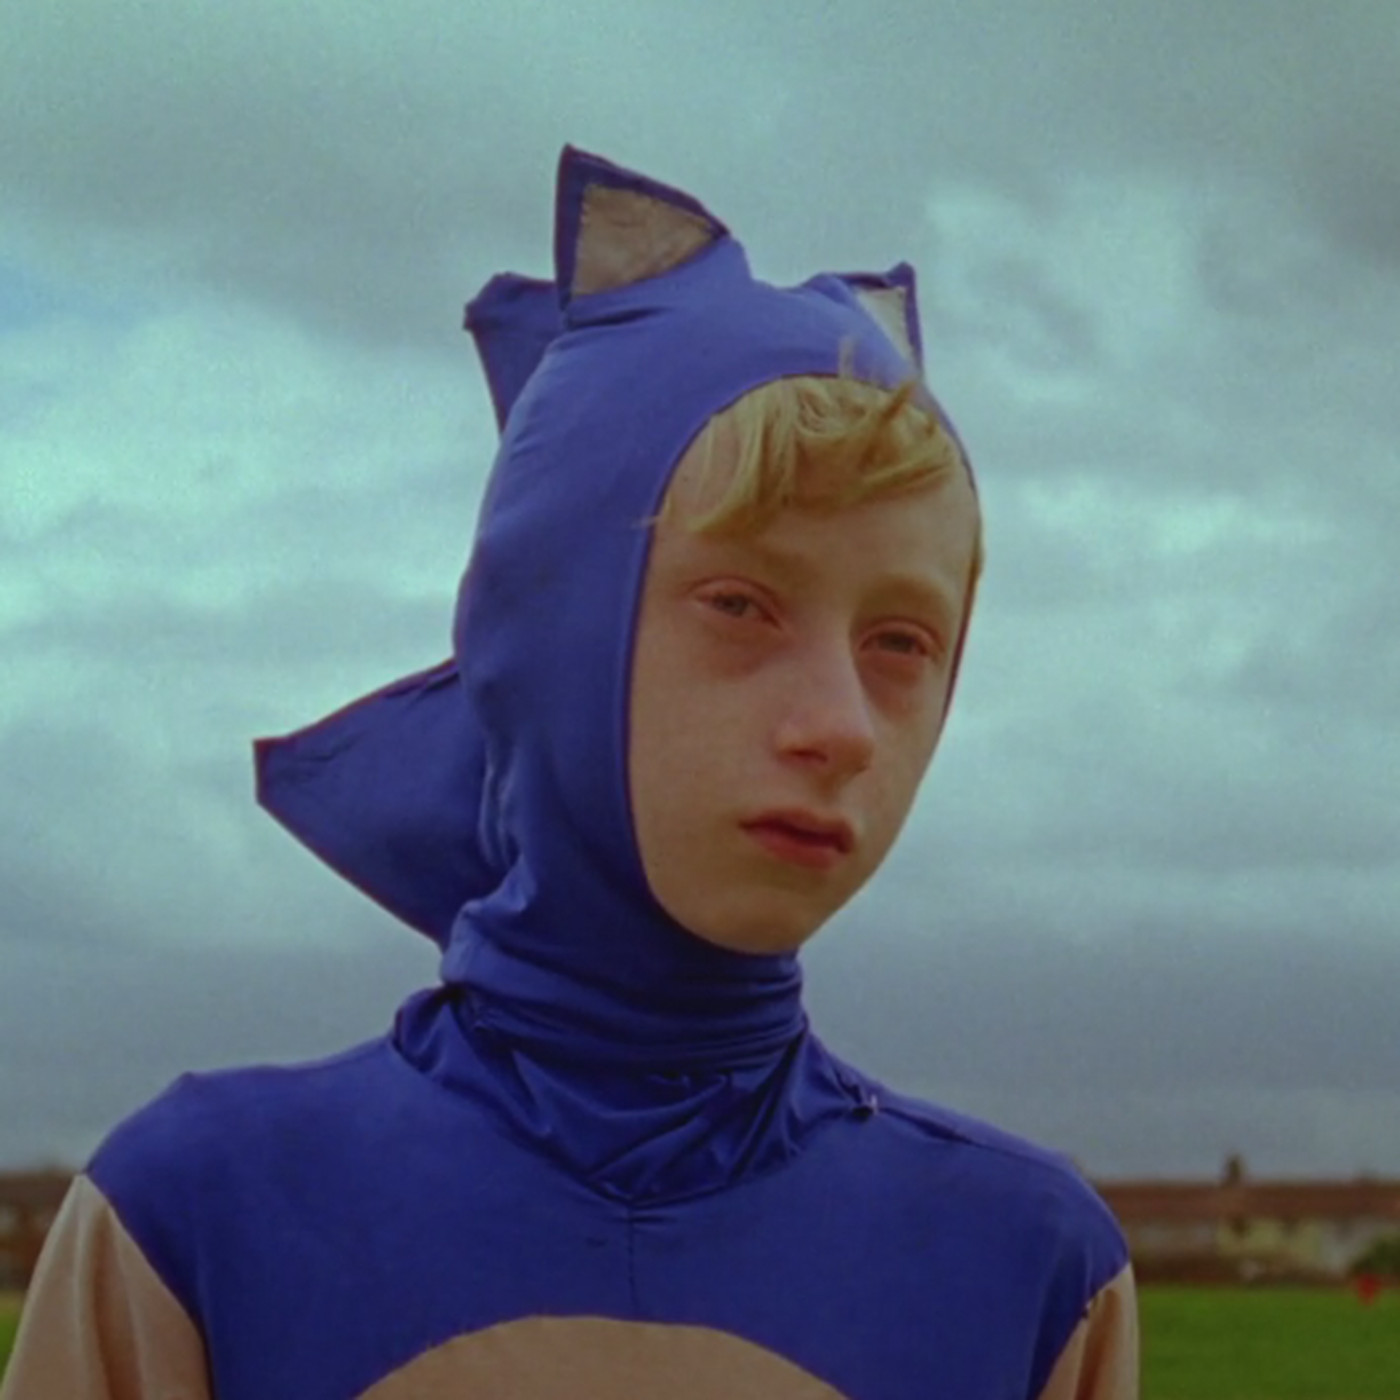 A Short Sonic The Hedgehog Film That Explores Loneliness Dread And The Horrors Of Youth Polygon